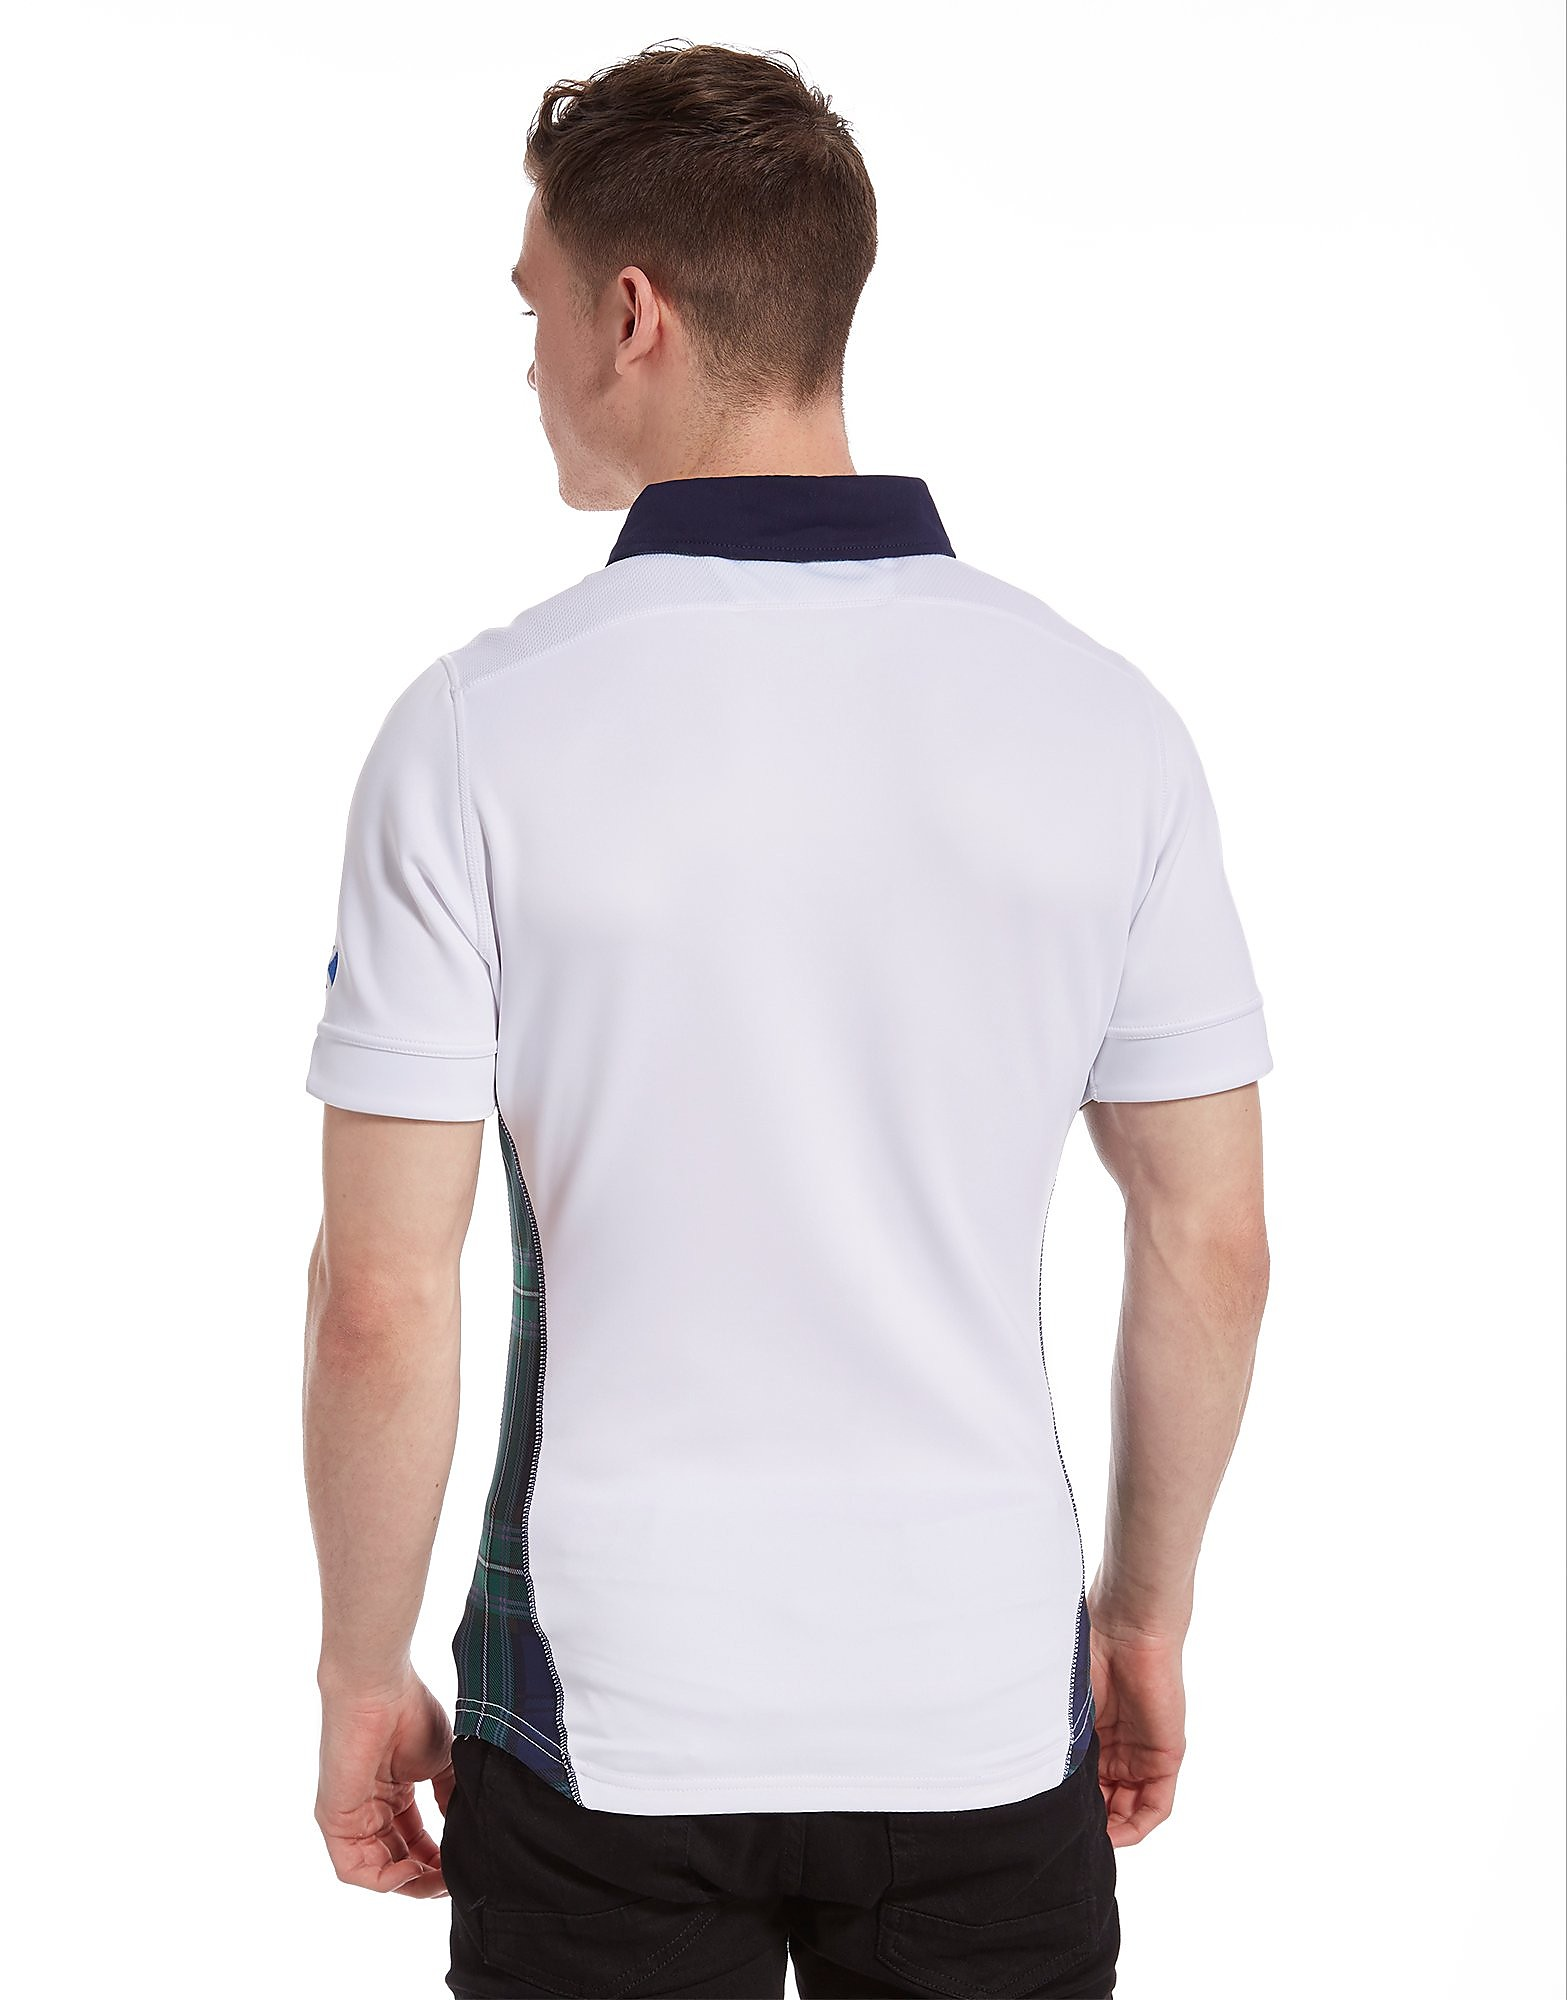 Macron Scotland Away 2015 Body Fit